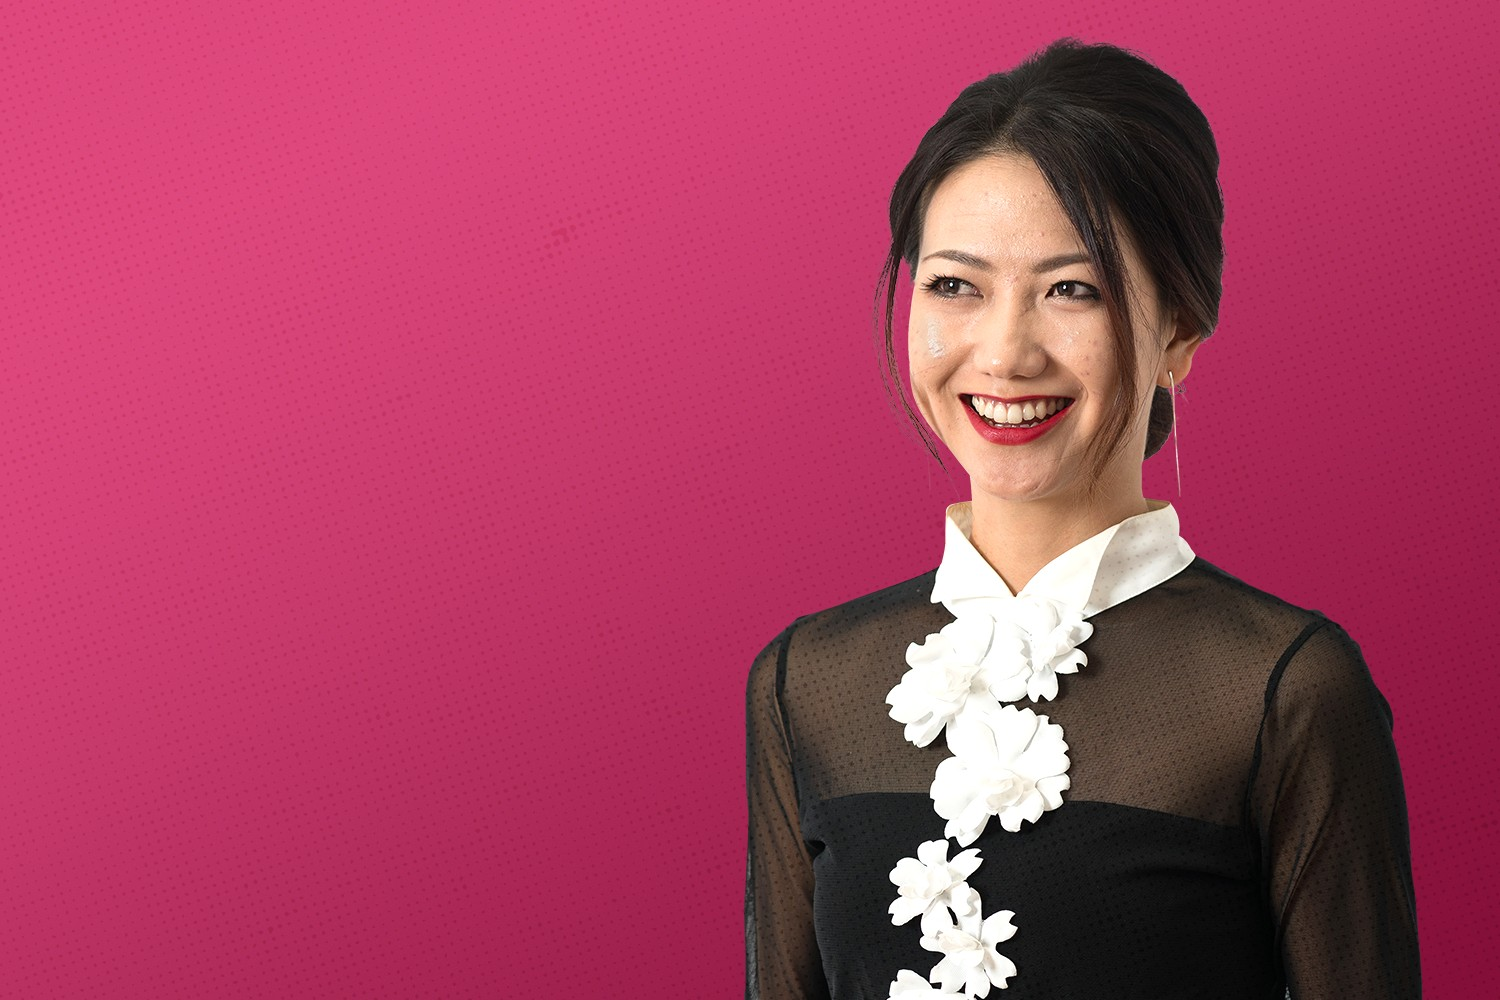 From anthropology to Mexico to Rakuten Mobile's International Roaming department: Ai Higashide shares her unique journey.